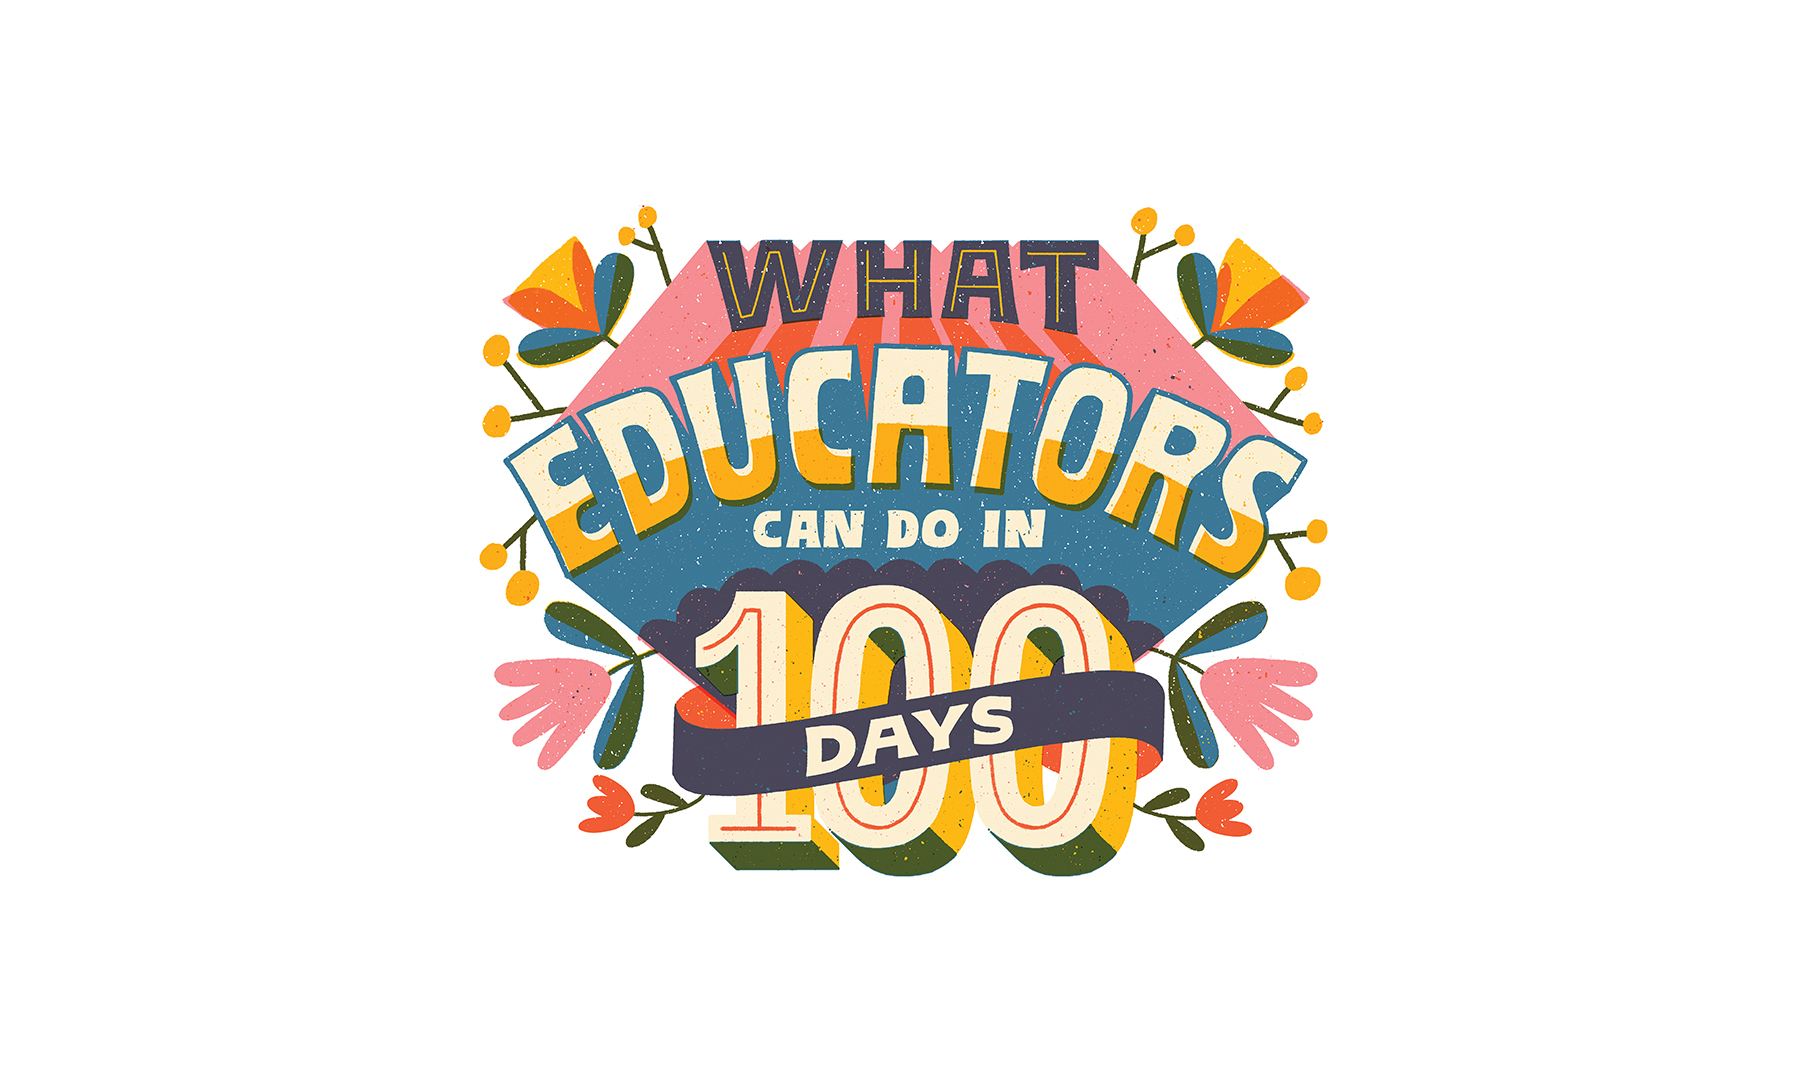 What Educators Can Do in 100 Days, TT Magazine, Issue 66, Spring 2021, Mary Kate McDevitt